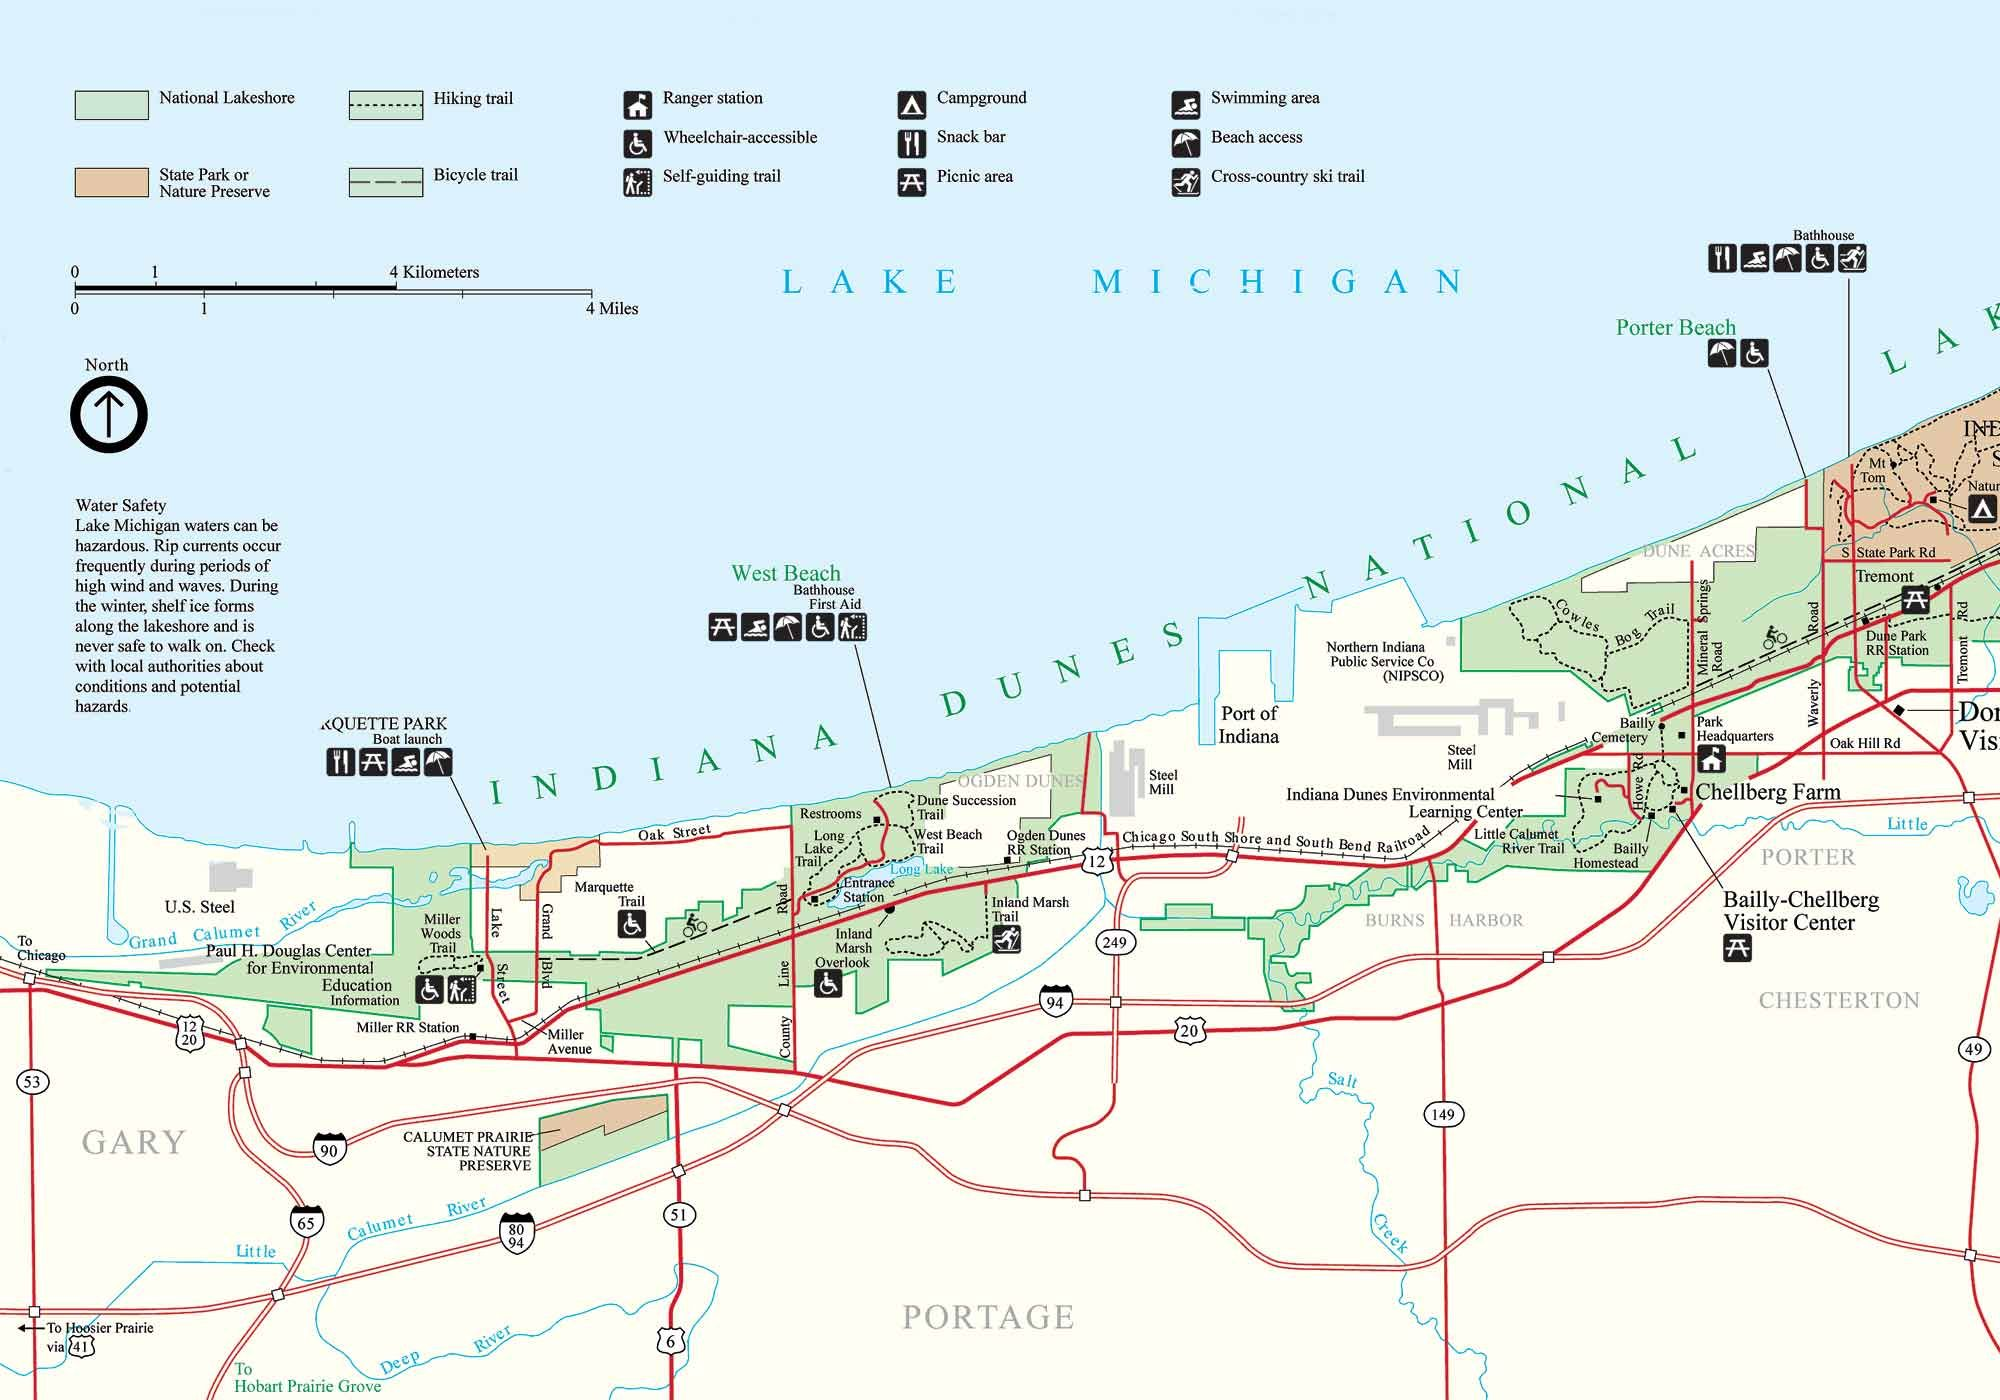 Indiana Dunes Park Map - Gary Indiana USA • mappery | Oh, the places on indiana road map of usa, indiana state map, maryland map usa, indiana atlas map site, indiana map with cities,